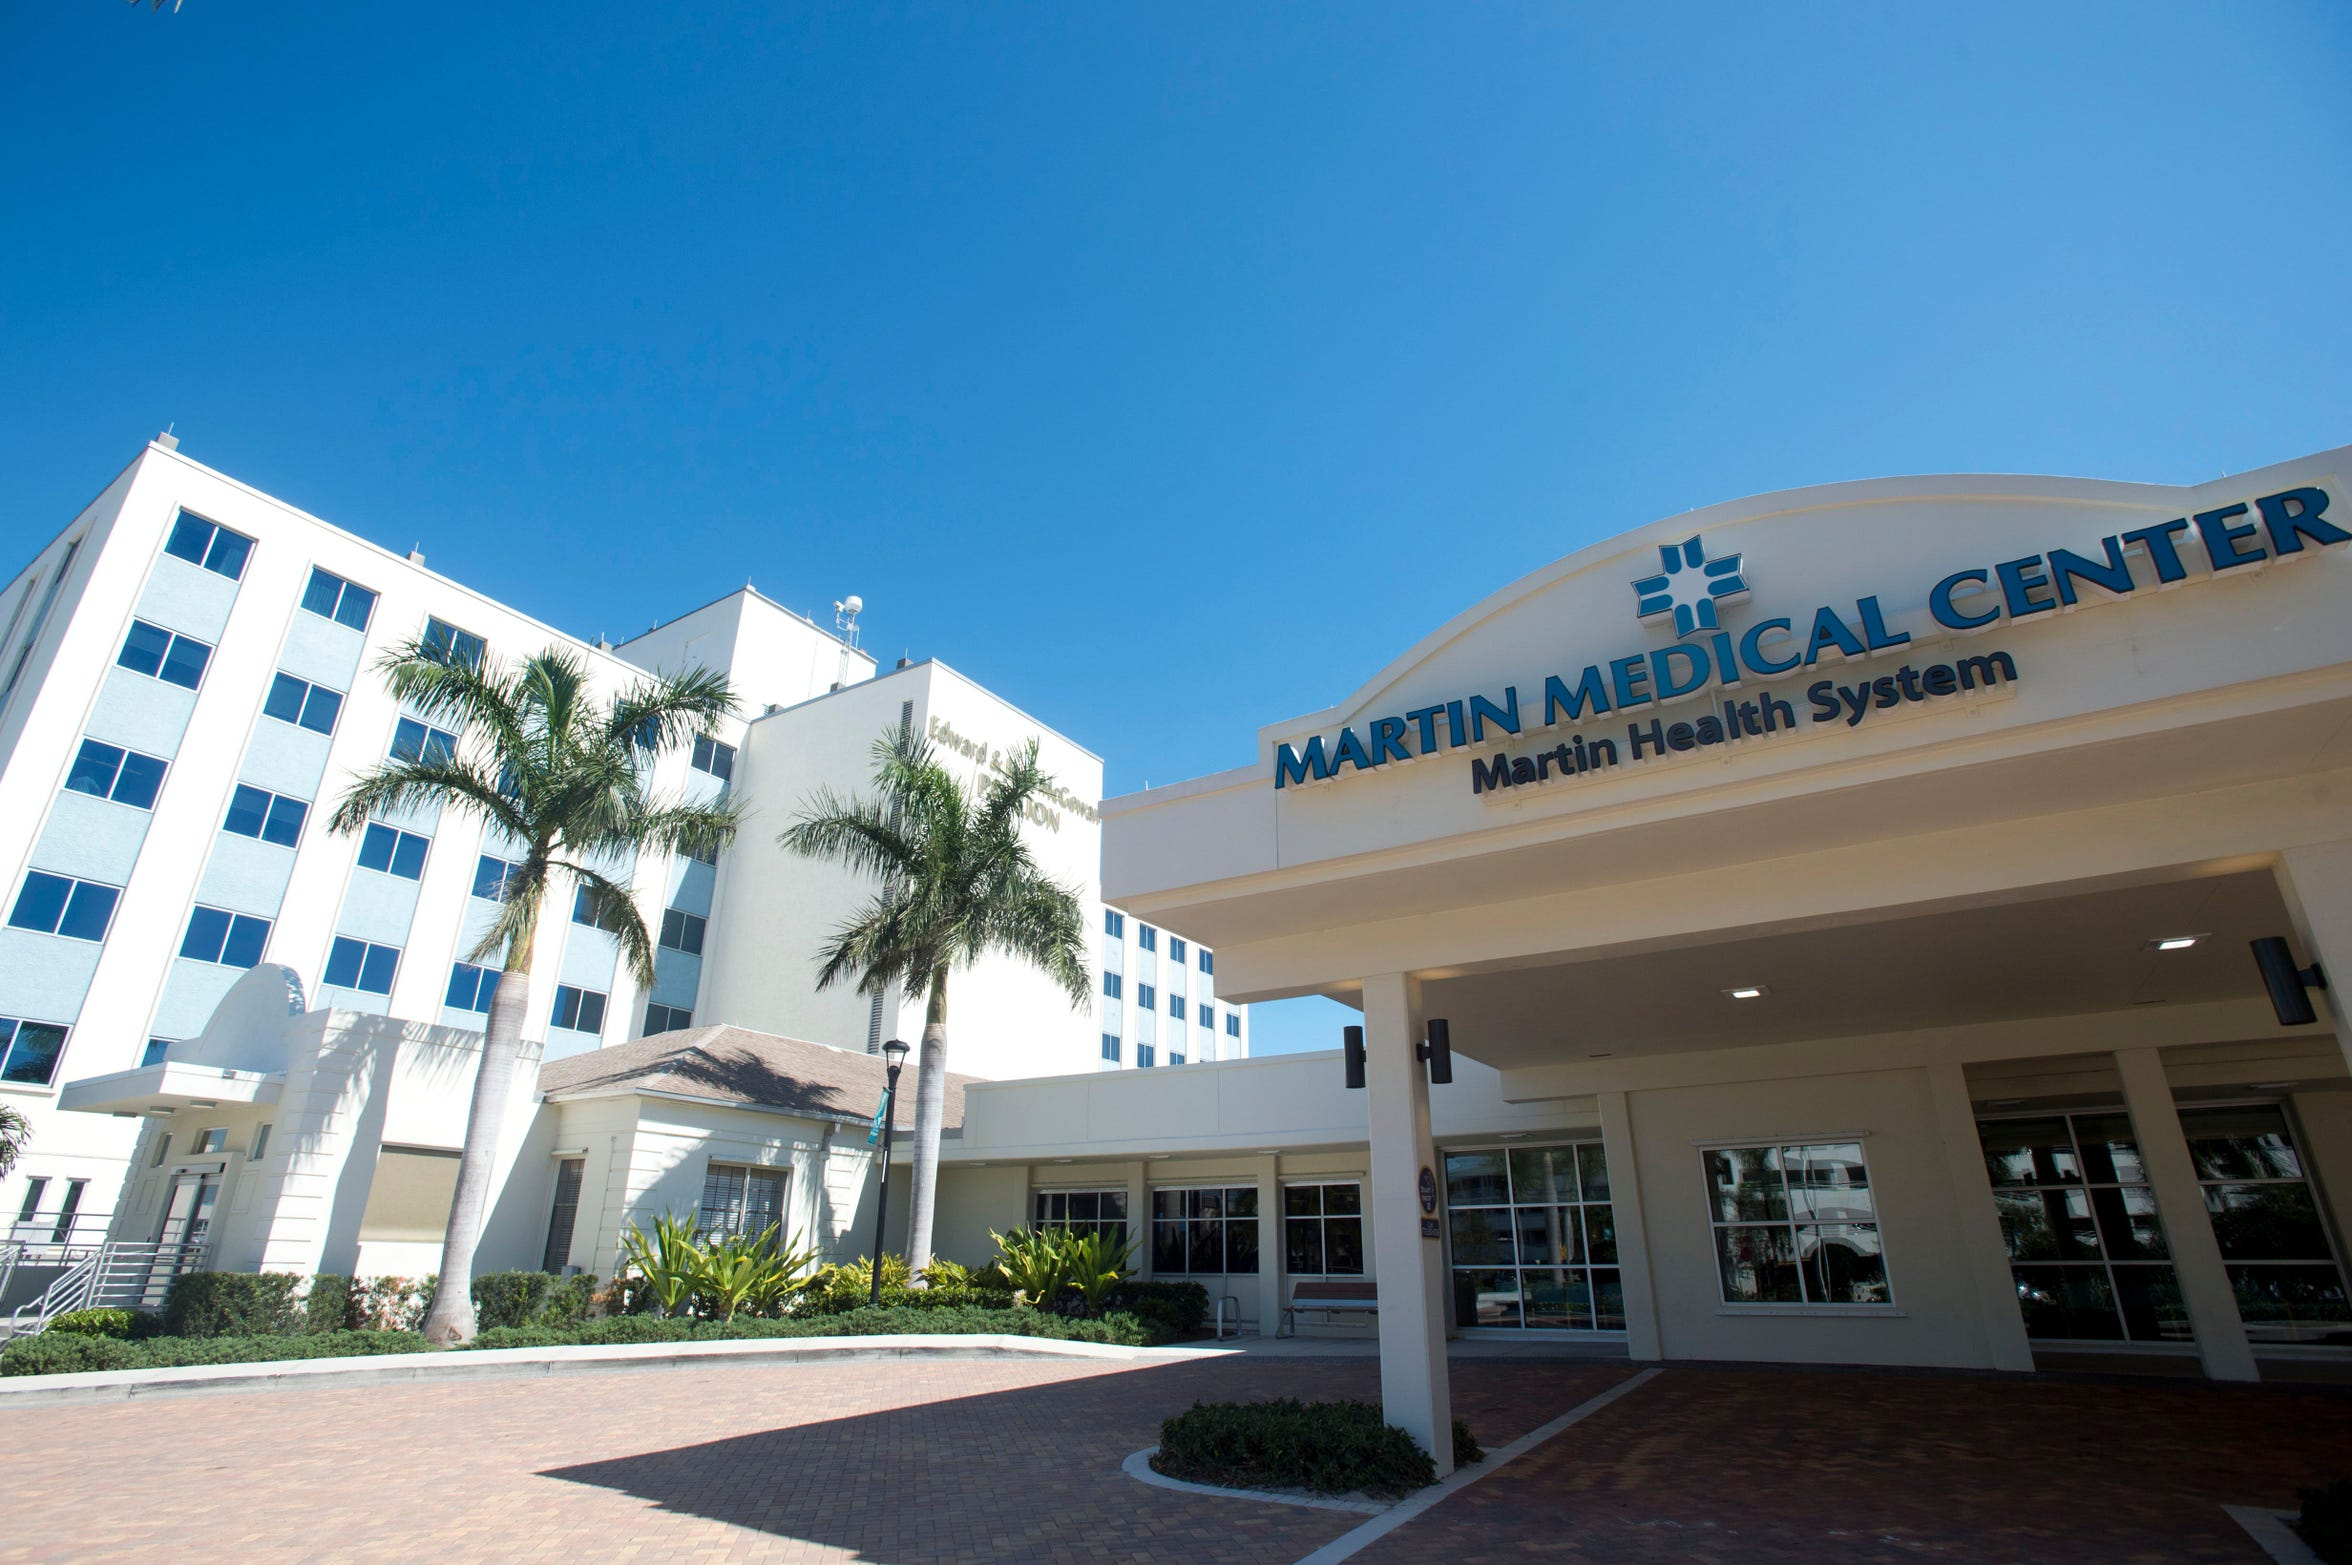 Martin Medical Center is now calledCleveland Clinic Martin North Hospital.